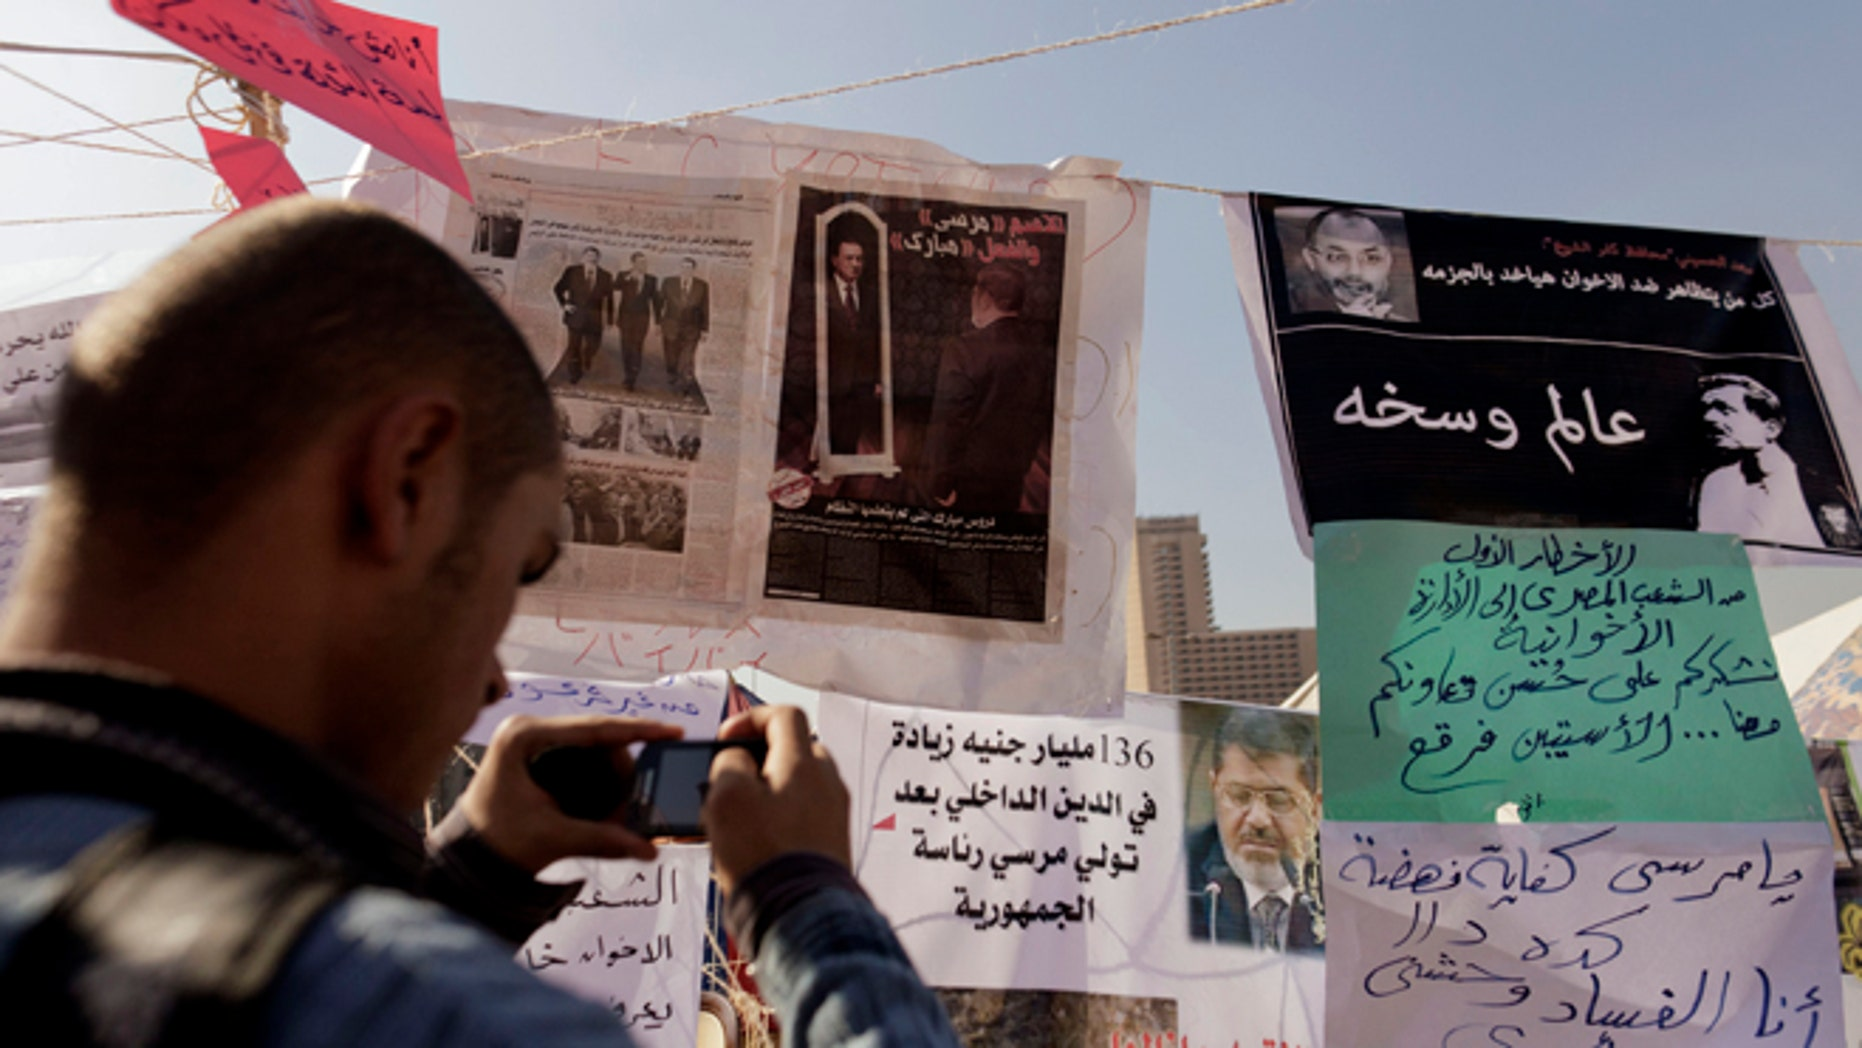 Nov. 29, 2012: An Egyptian protester photographs newspapers and placards on display in a makeshift museum in Tahrir Square in Cairo, Egypt.